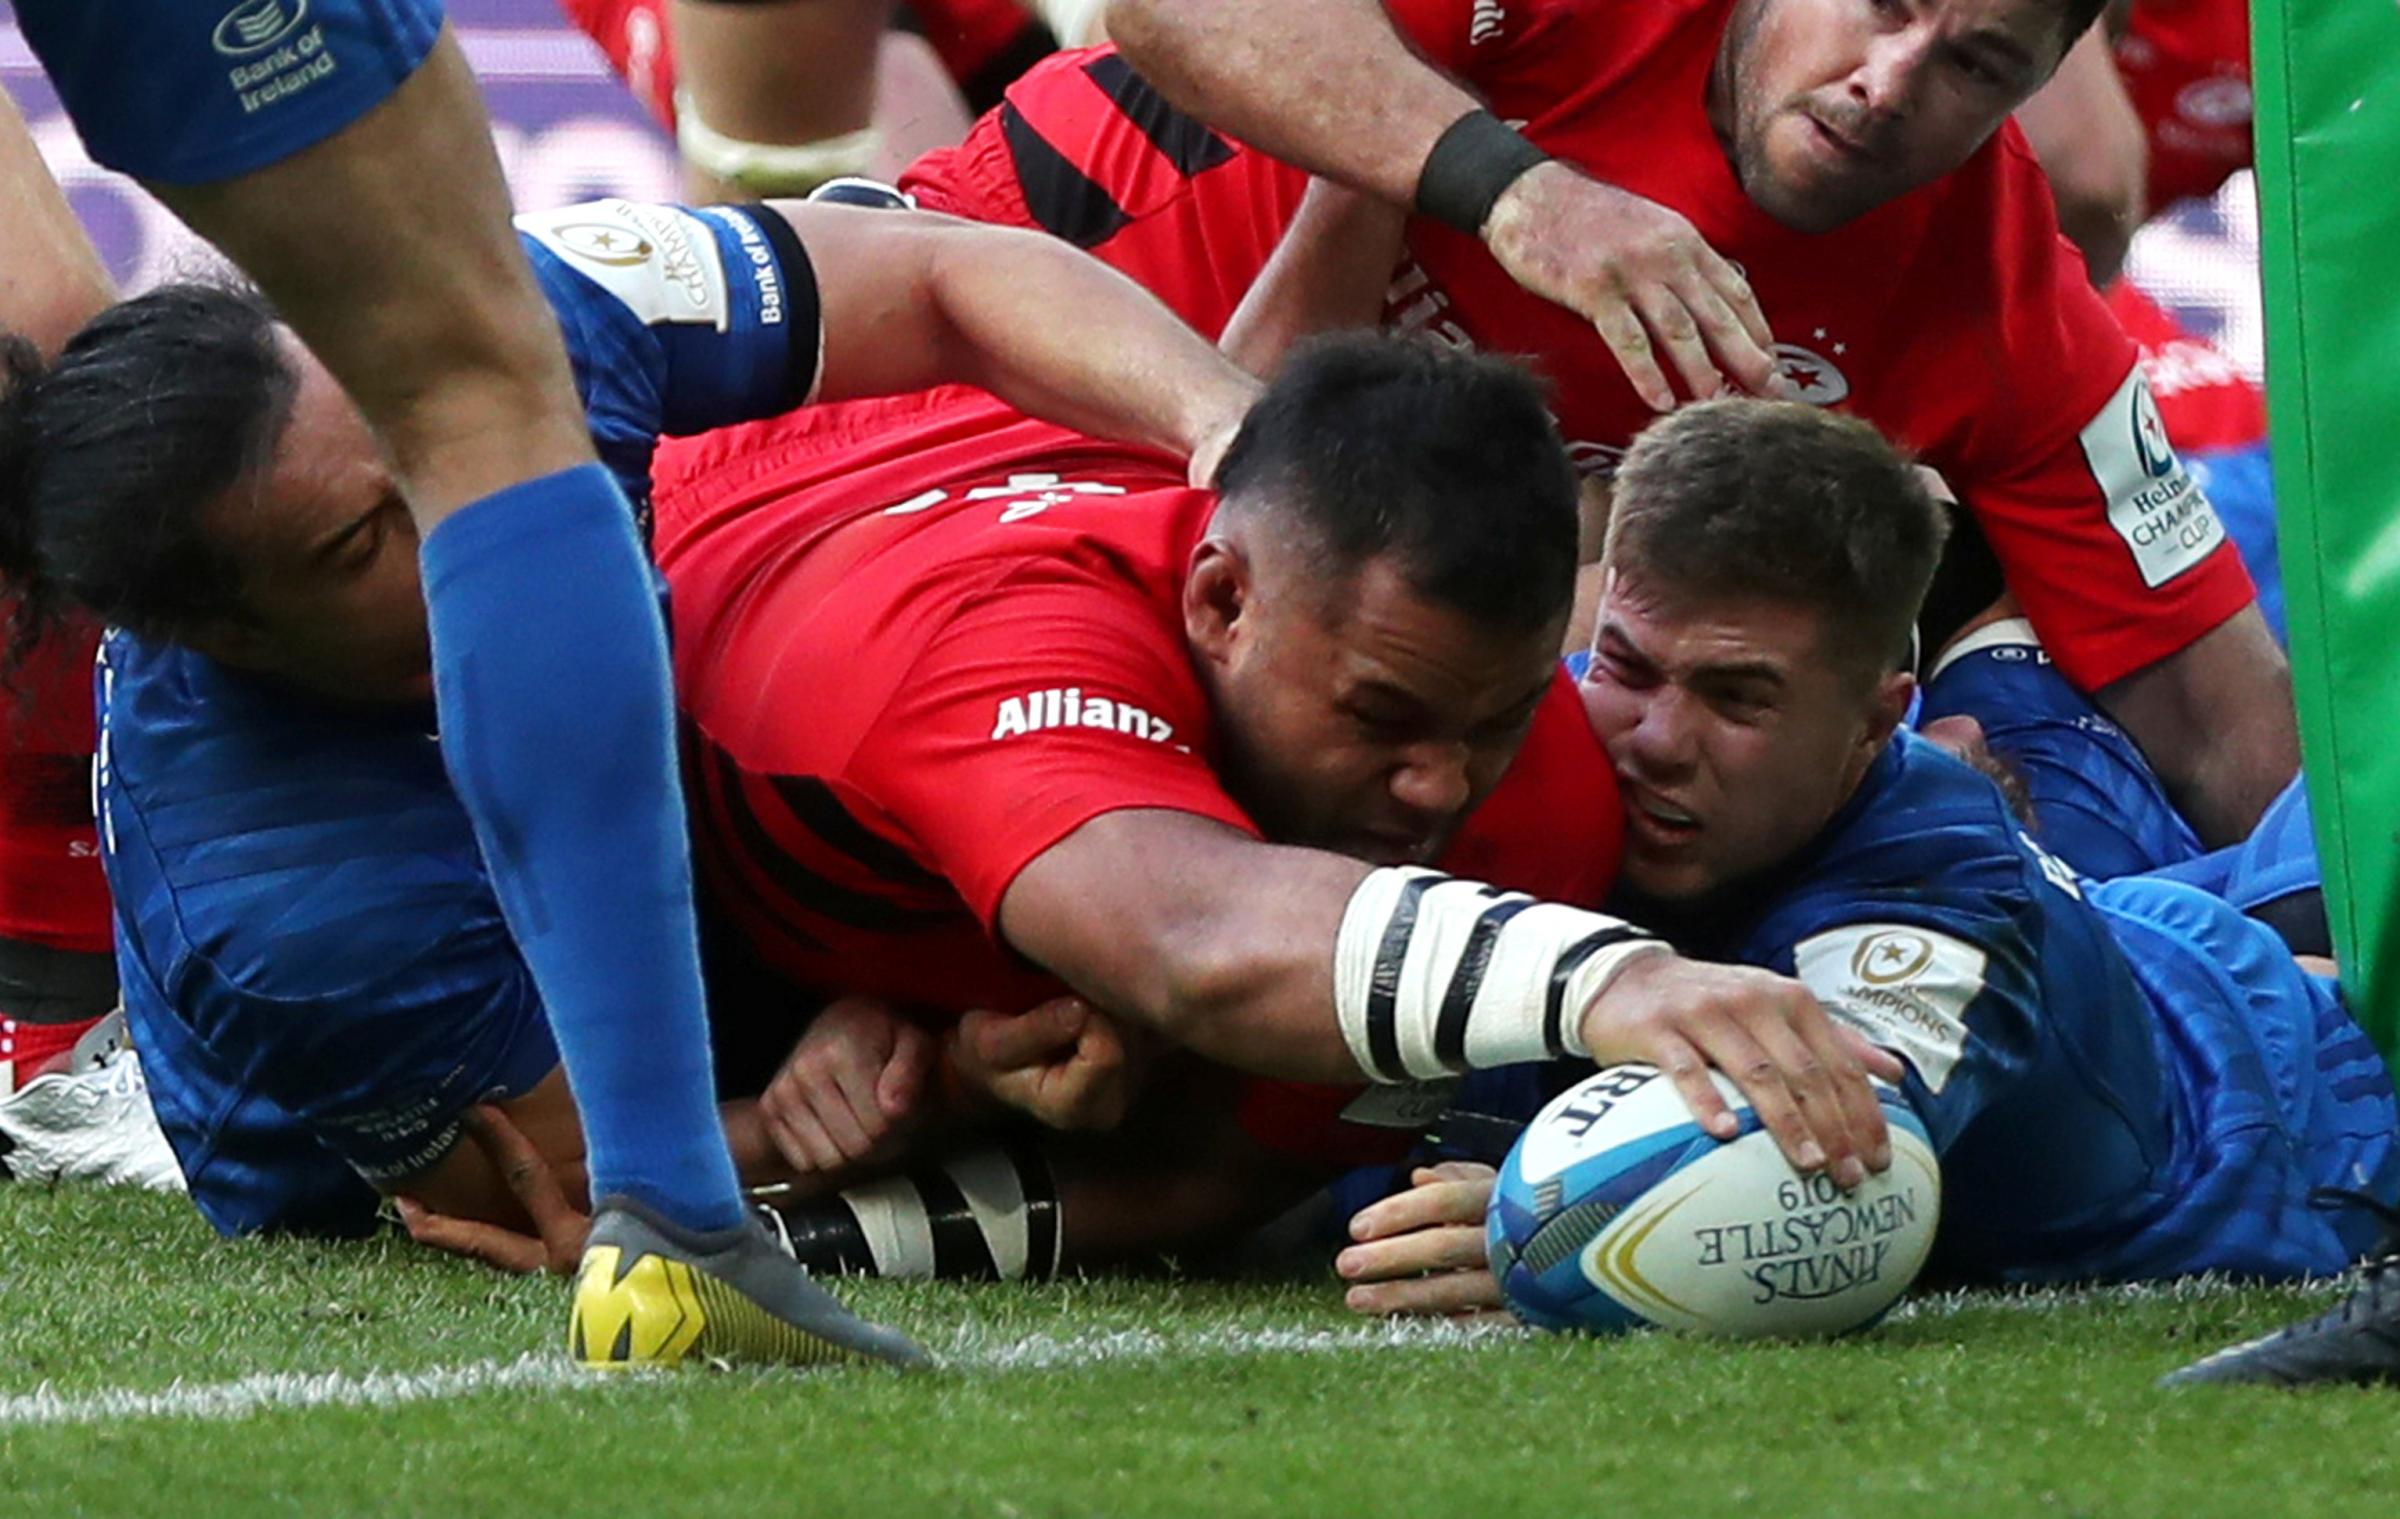 Billy Vunipola reaches out for Saracens' trophy-winning try. Picture: Action Images